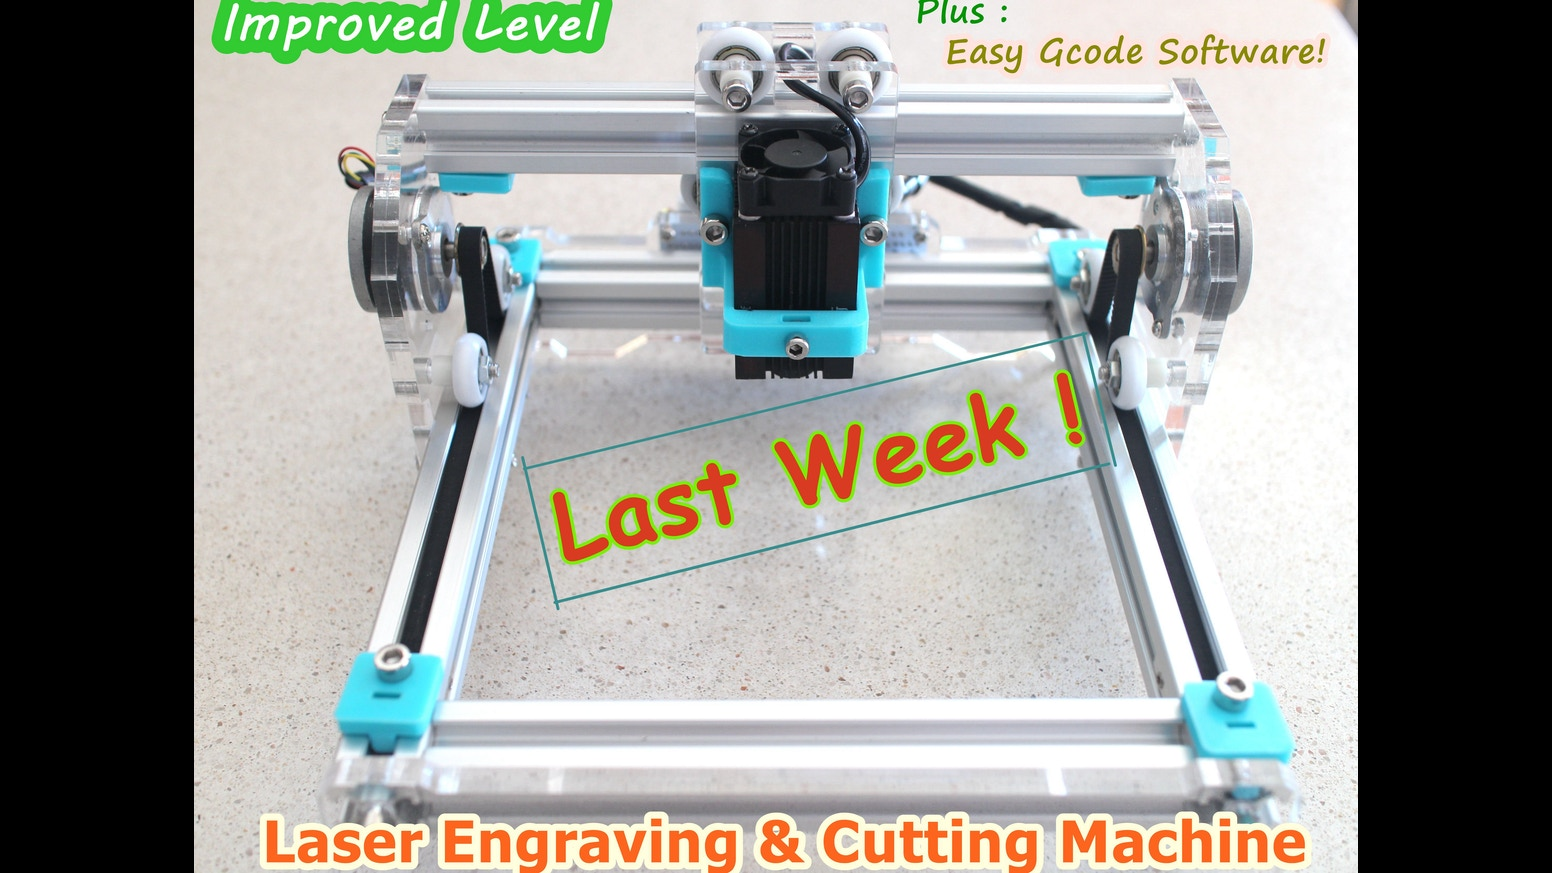 Laser Cube 2.0 + EasyGcode Software for All Laser Machines ...